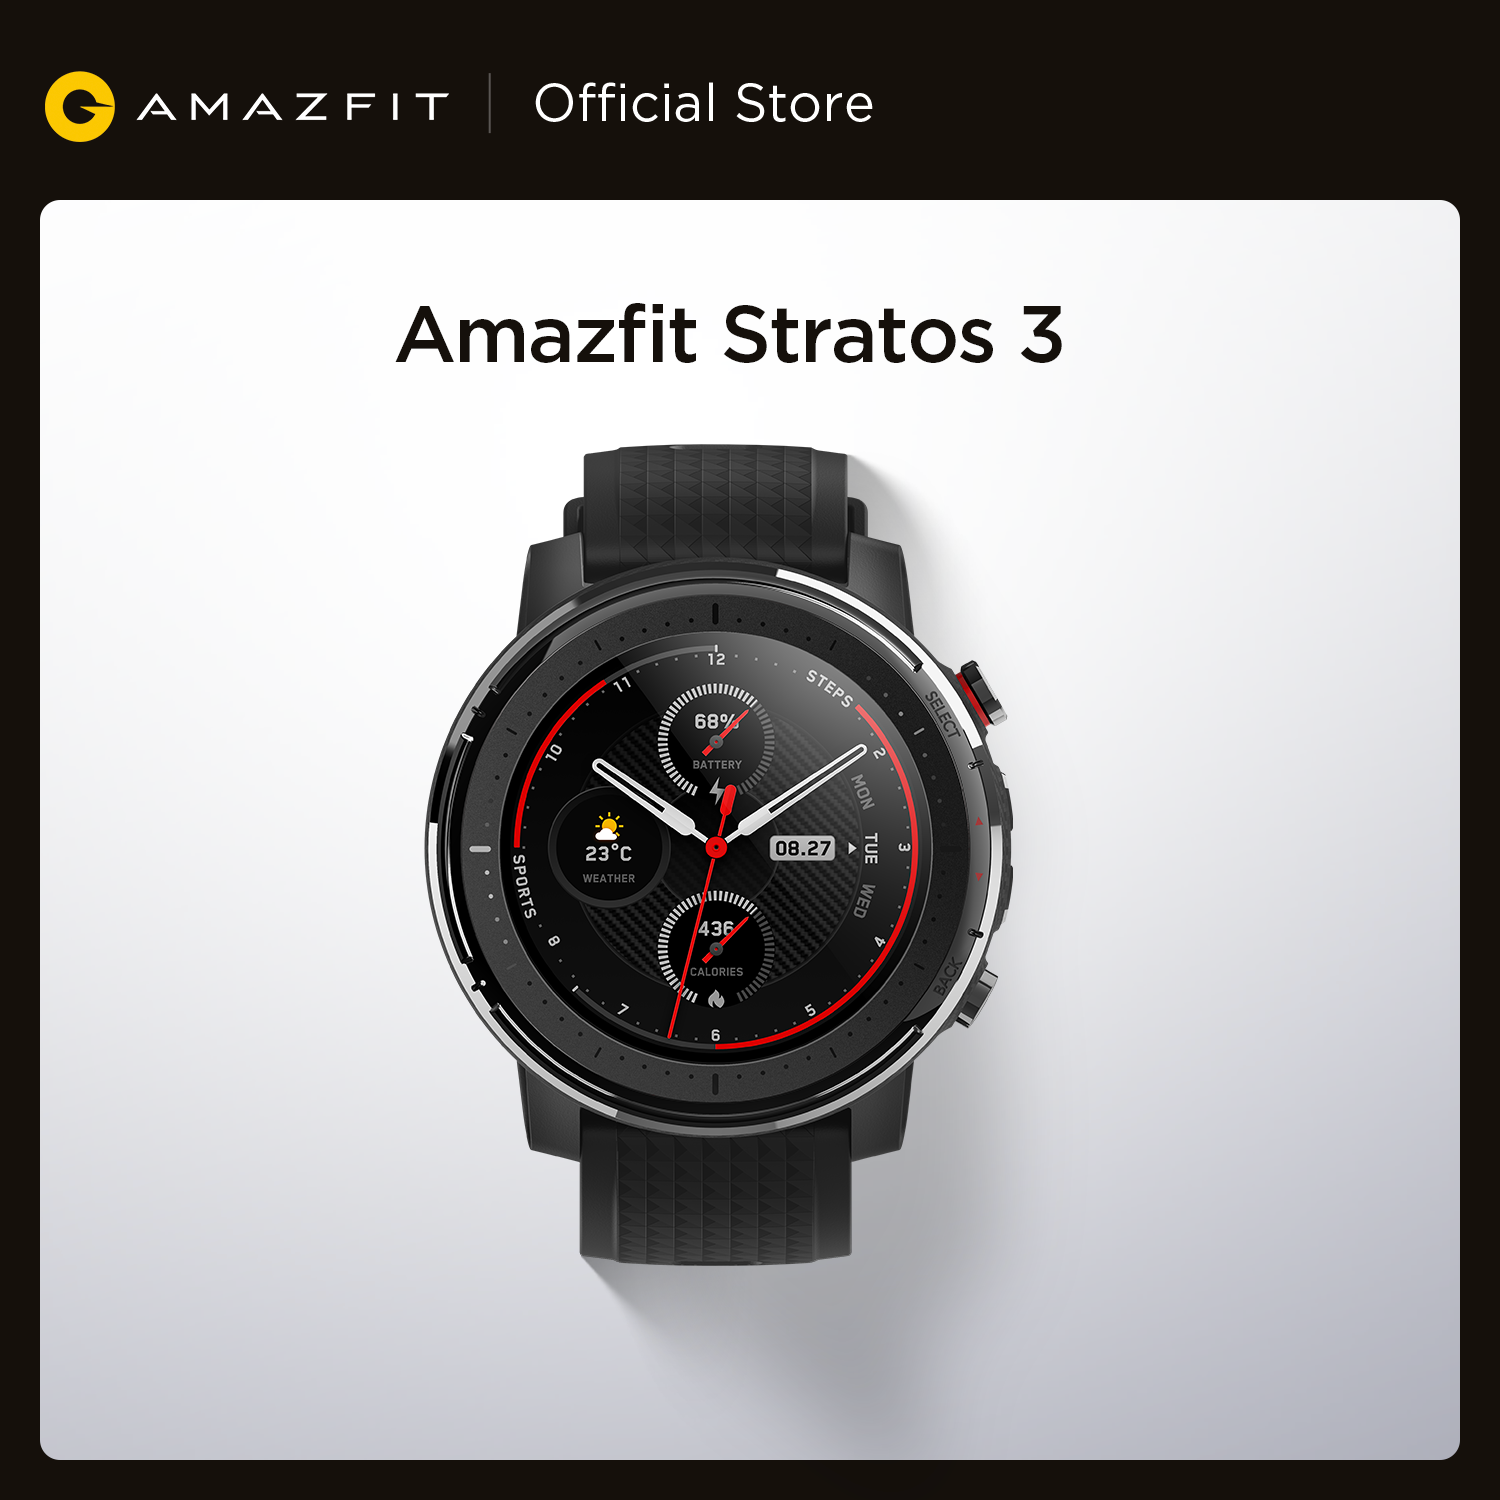 Smart-Watch GPS Bluetooth Global-Version Dual-Mode Android New Amazfit Stratos 3 5ATM